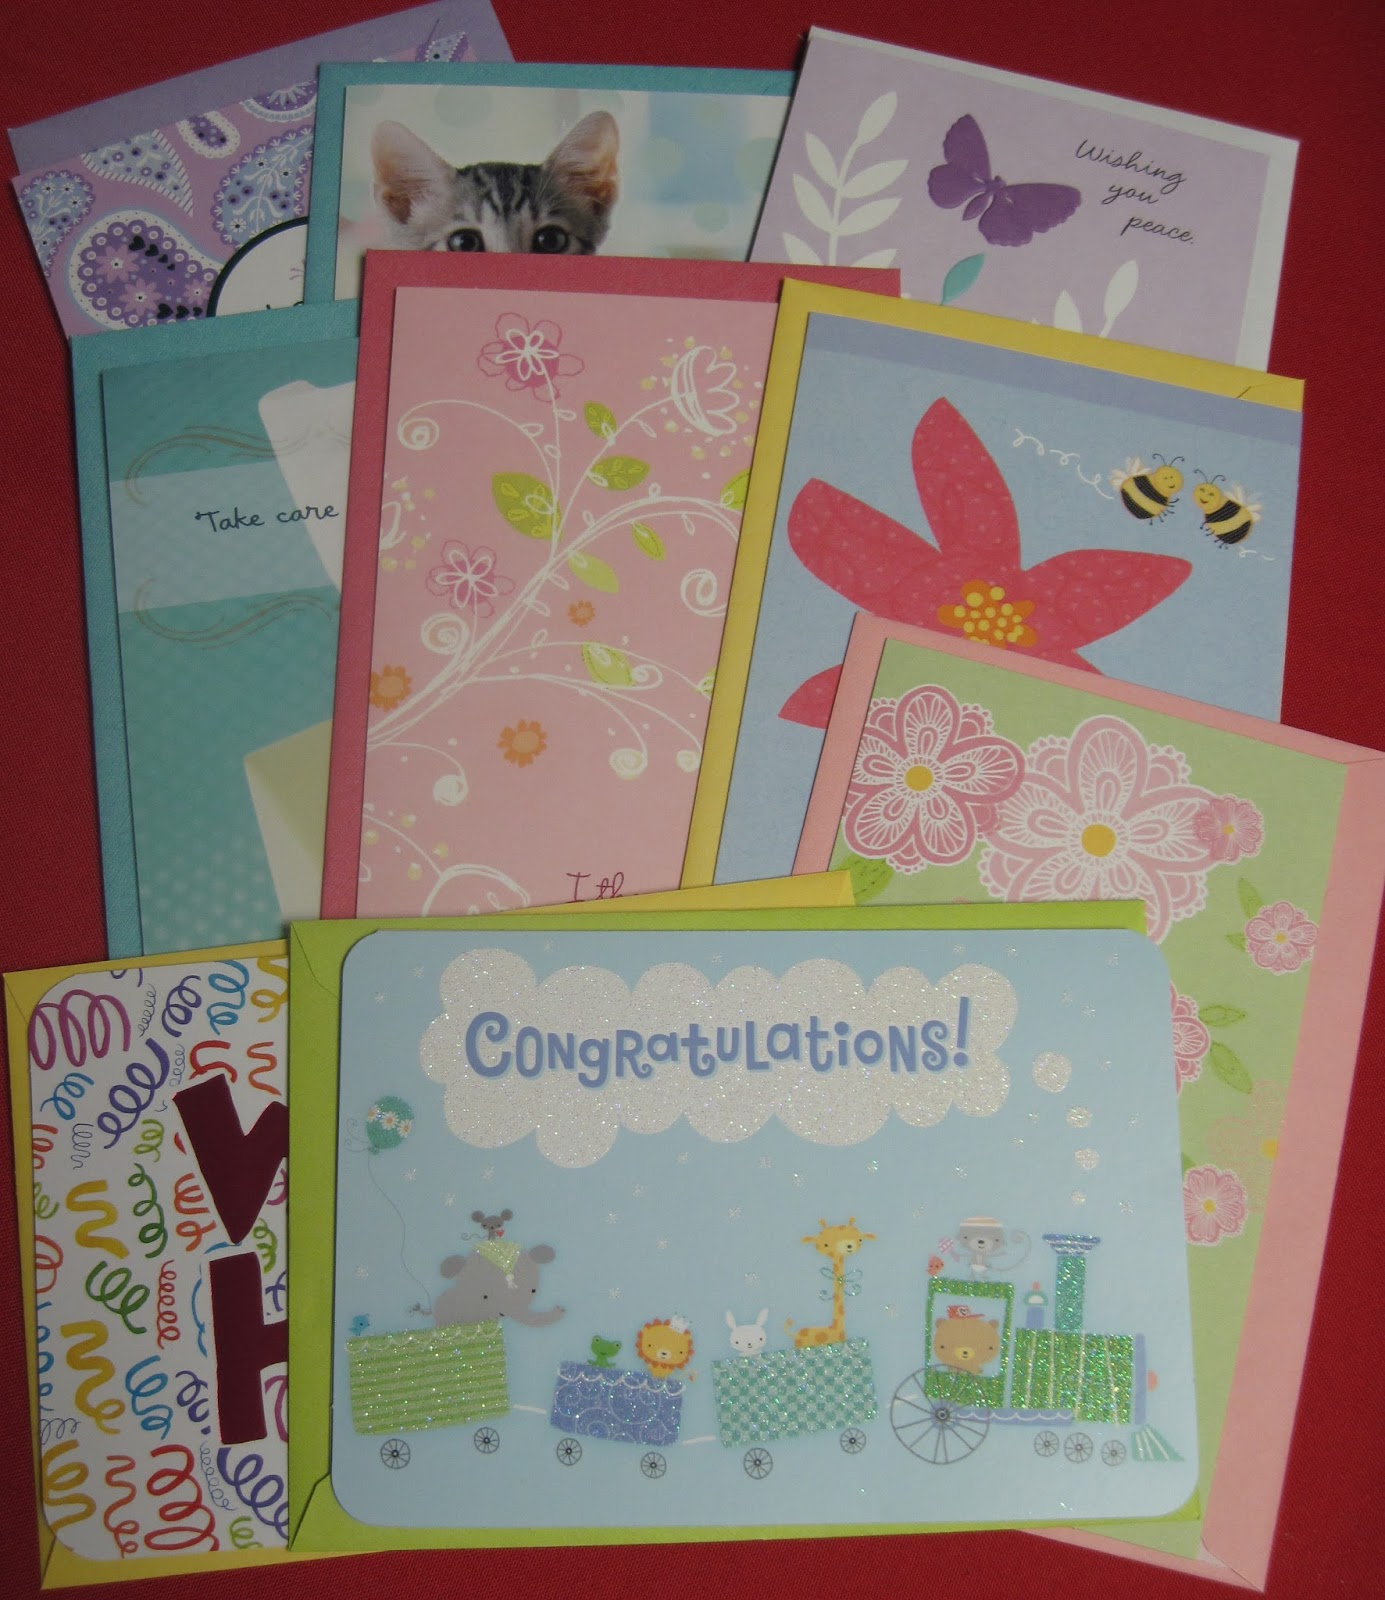 simply cvs  free greeting cards at cvs  1  16